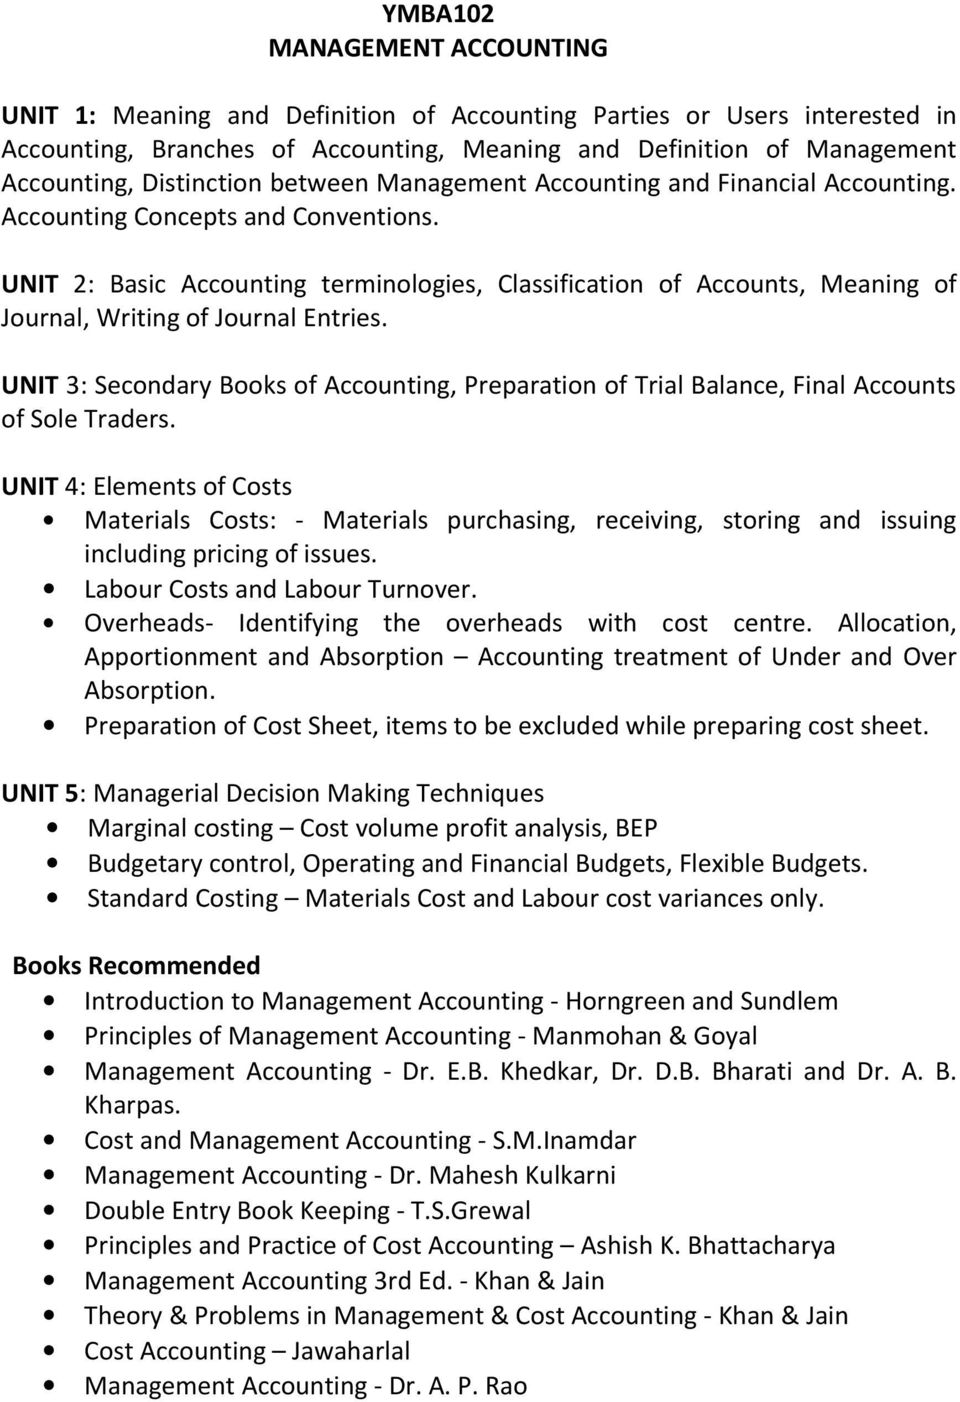 UNIT 2: Basic Accounting terminologies, Classification of Accounts, Meaning of Journal, Writing of Journal Entries.